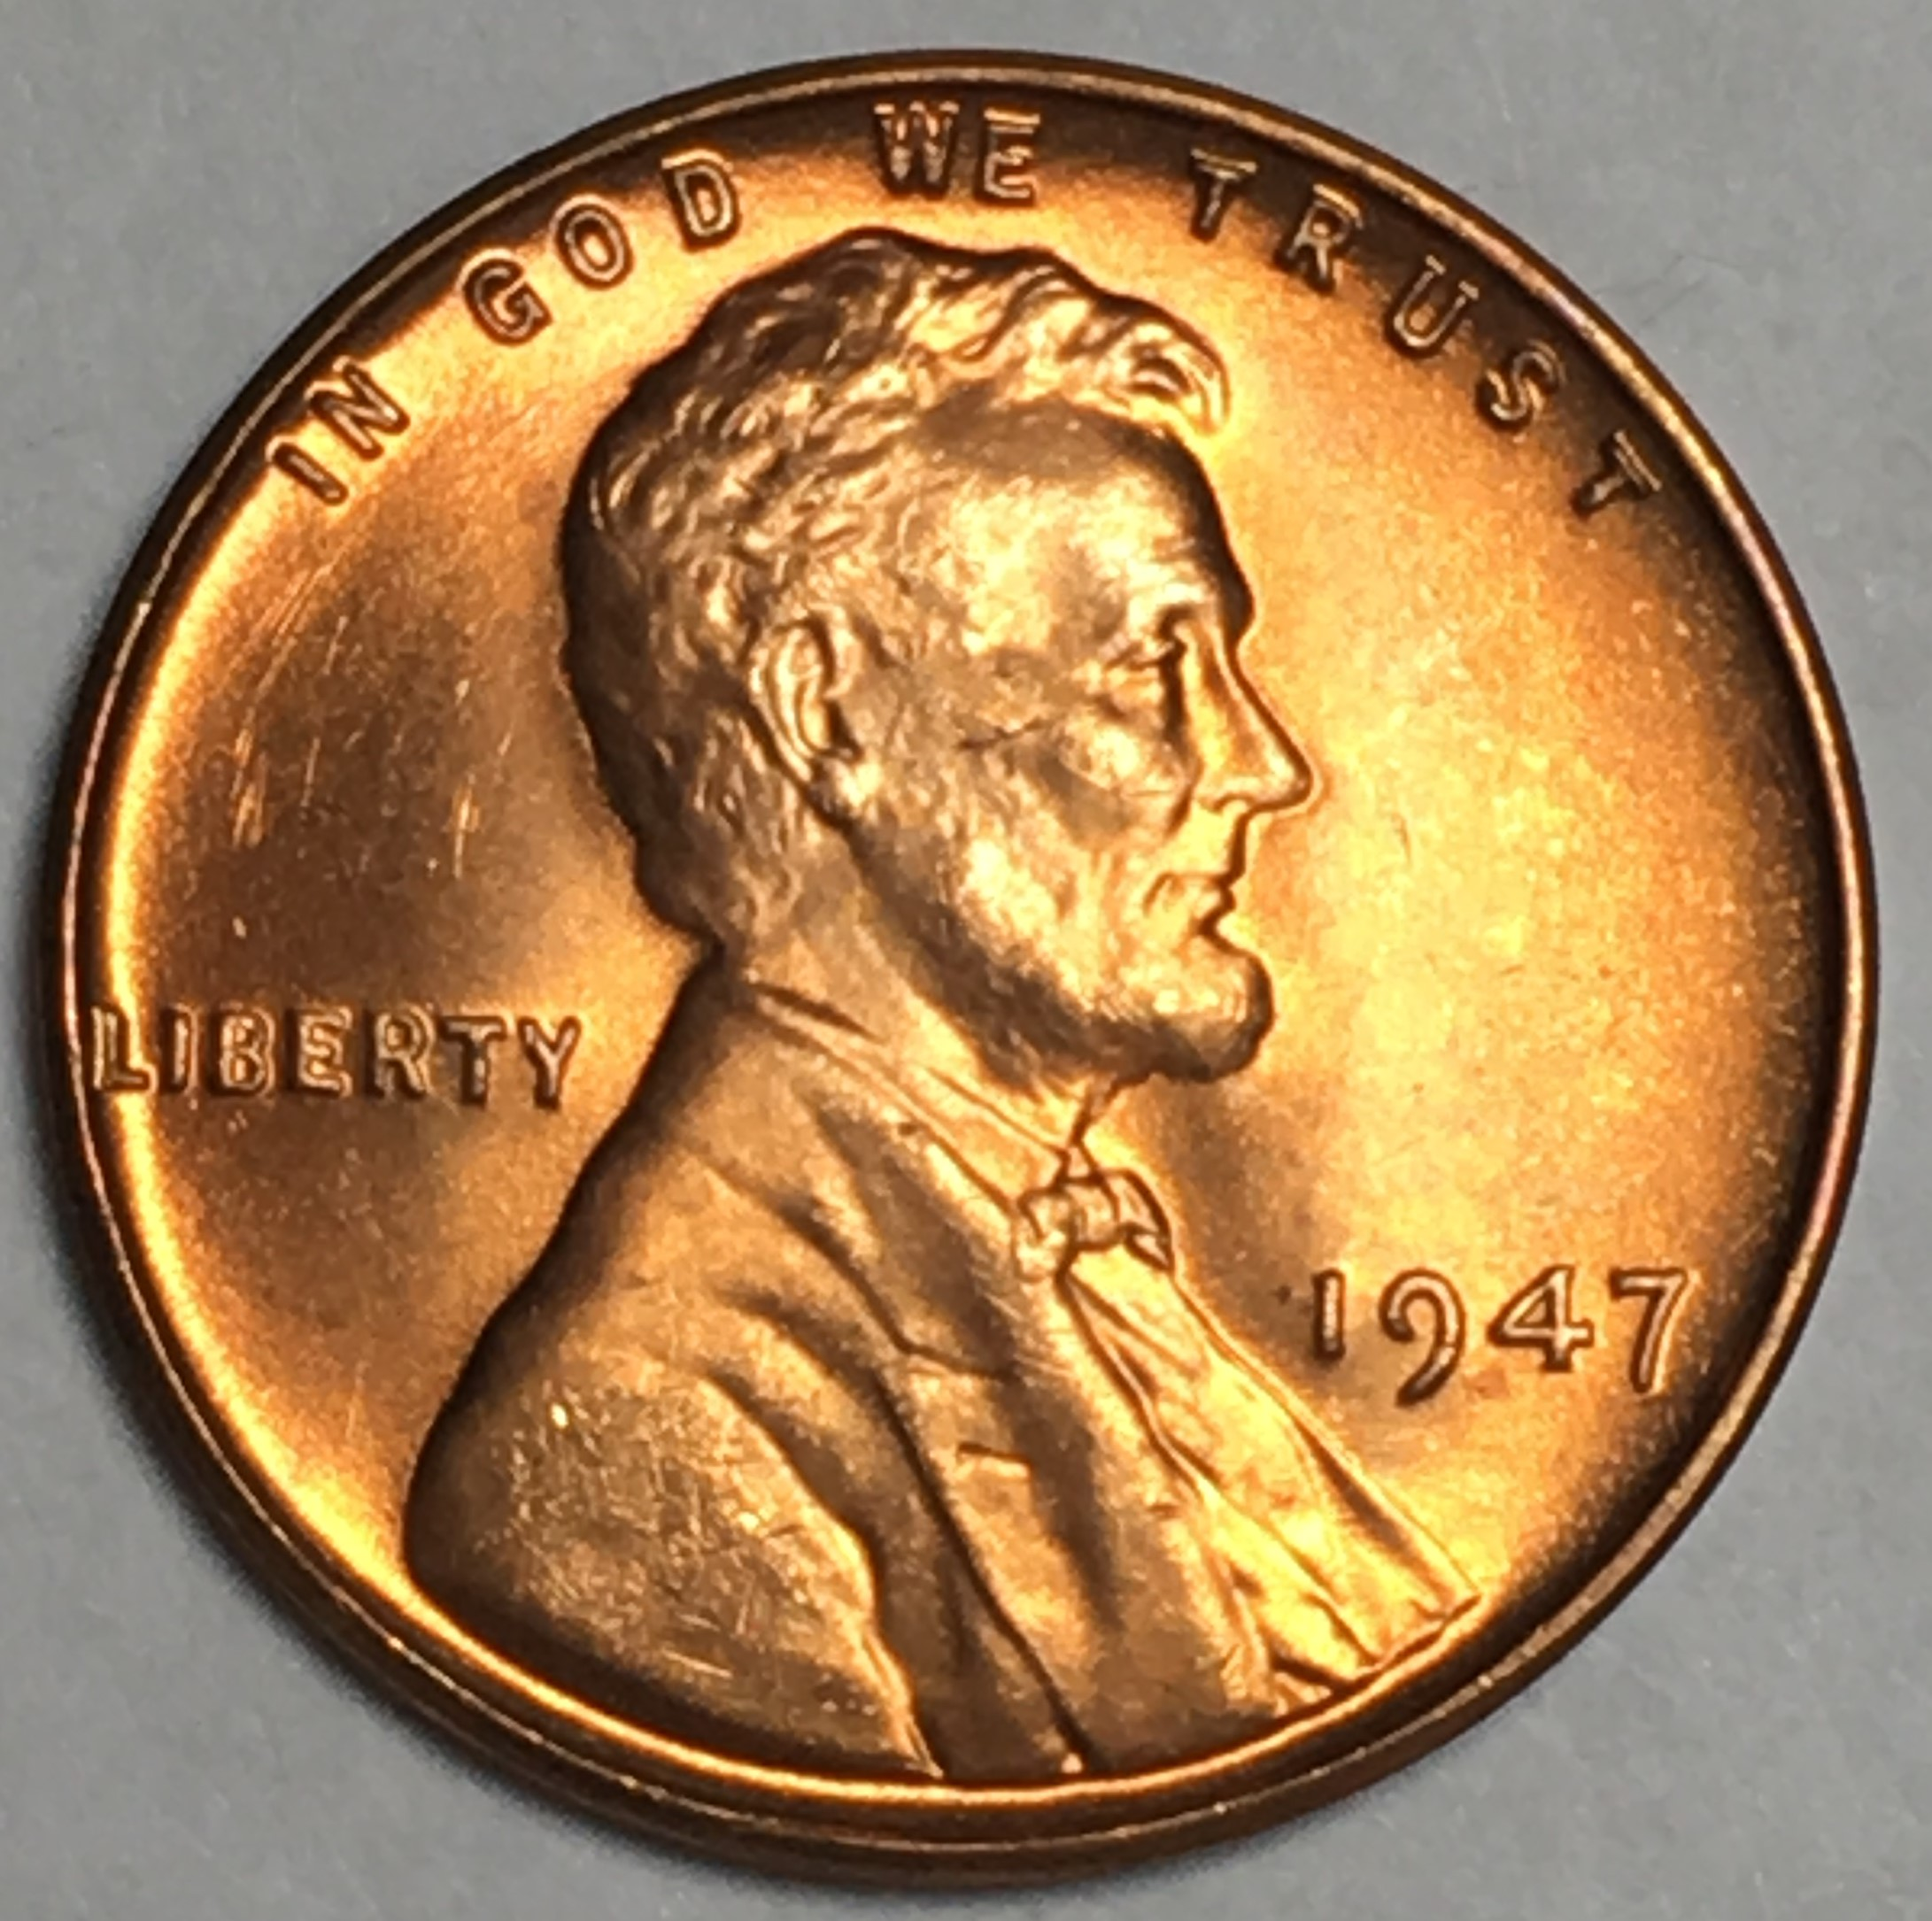 Roll Of 1947-S Lincoln Wheats Circulated